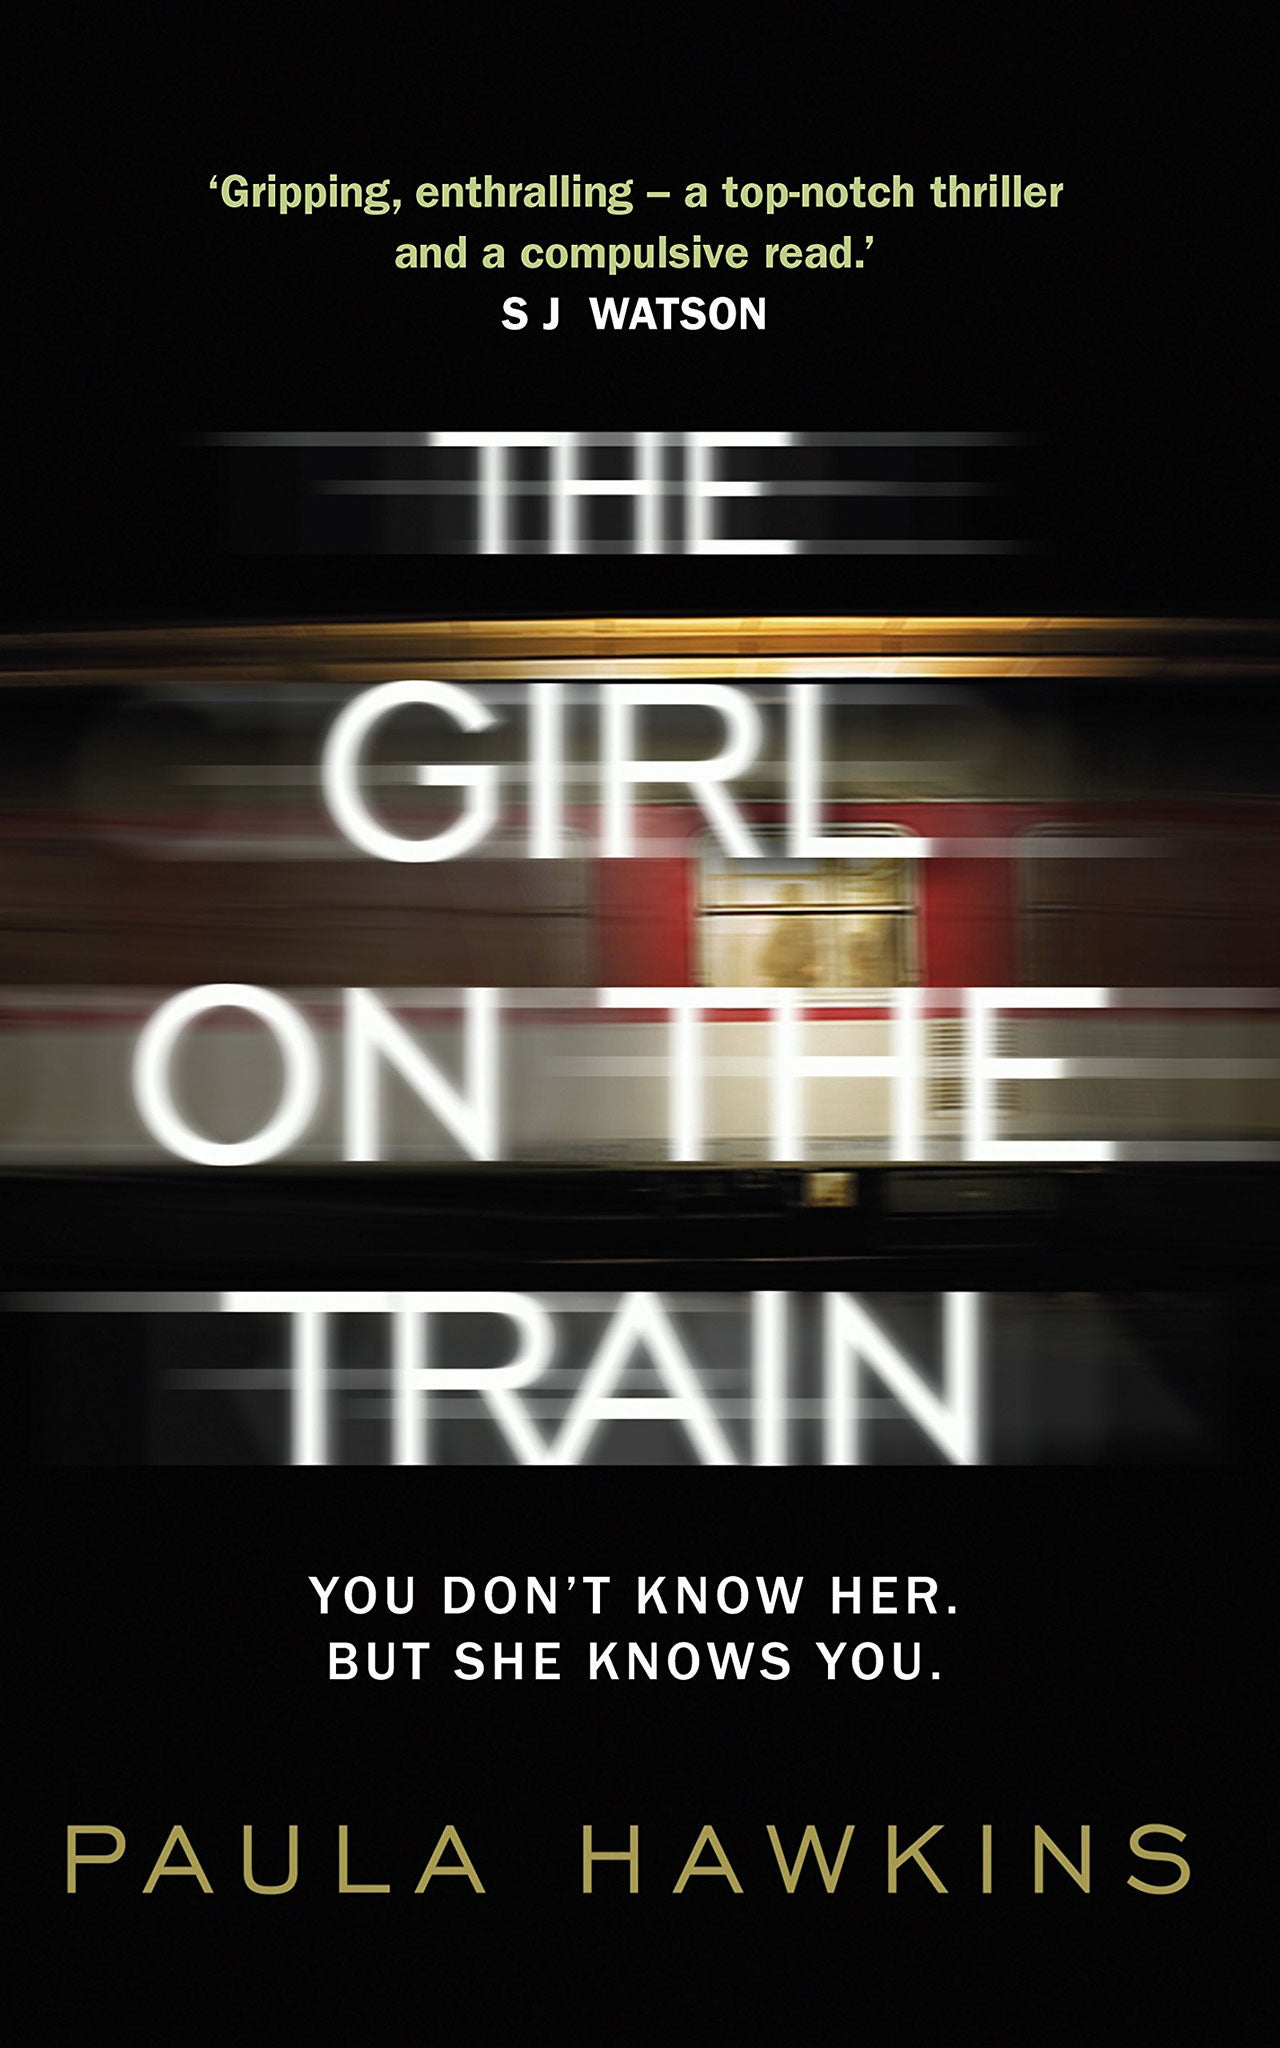 https://static.independent.co.uk/s3fs-public/thumbnails/image/2015/01/16/17/the-girl-on-the-train.jpg